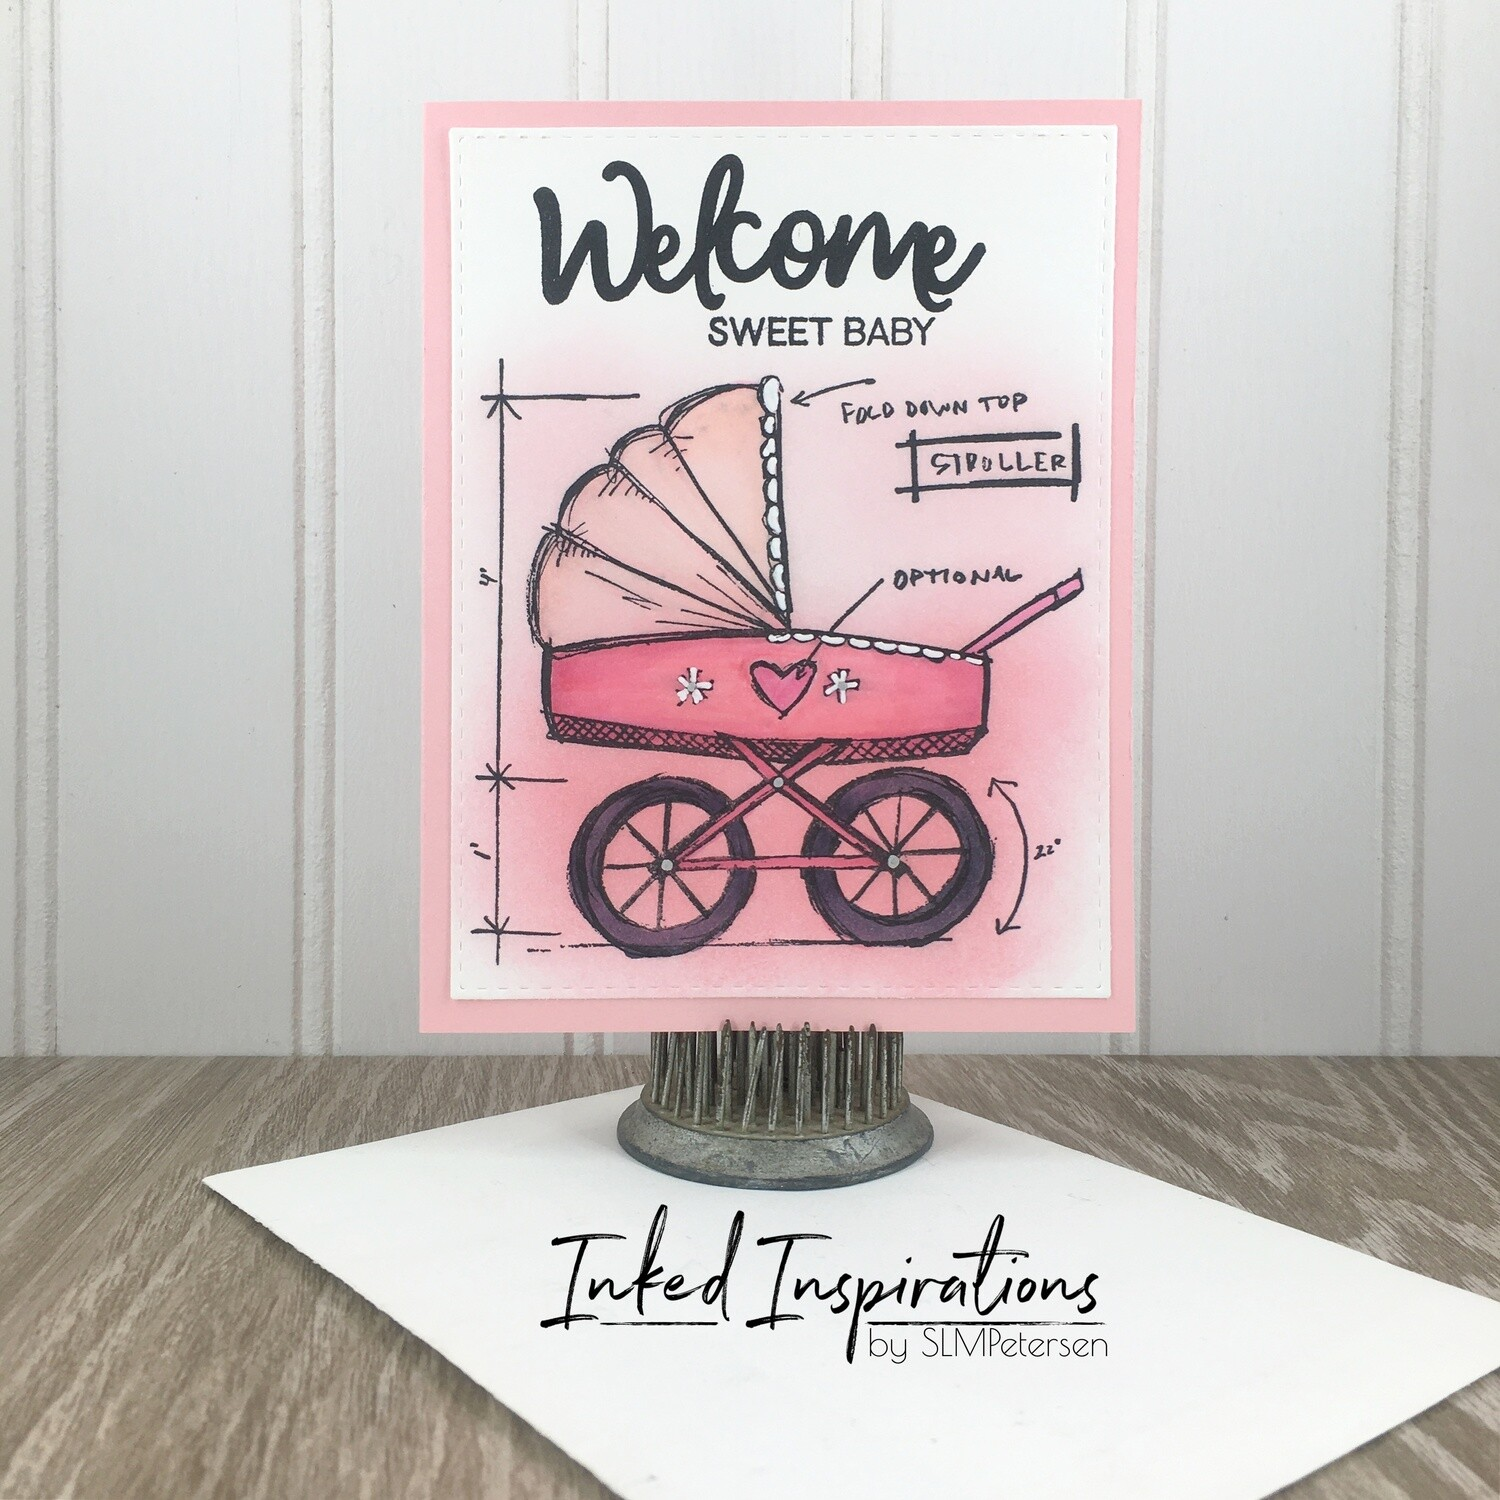 Welcome Sweet Baby - Pink Buggy